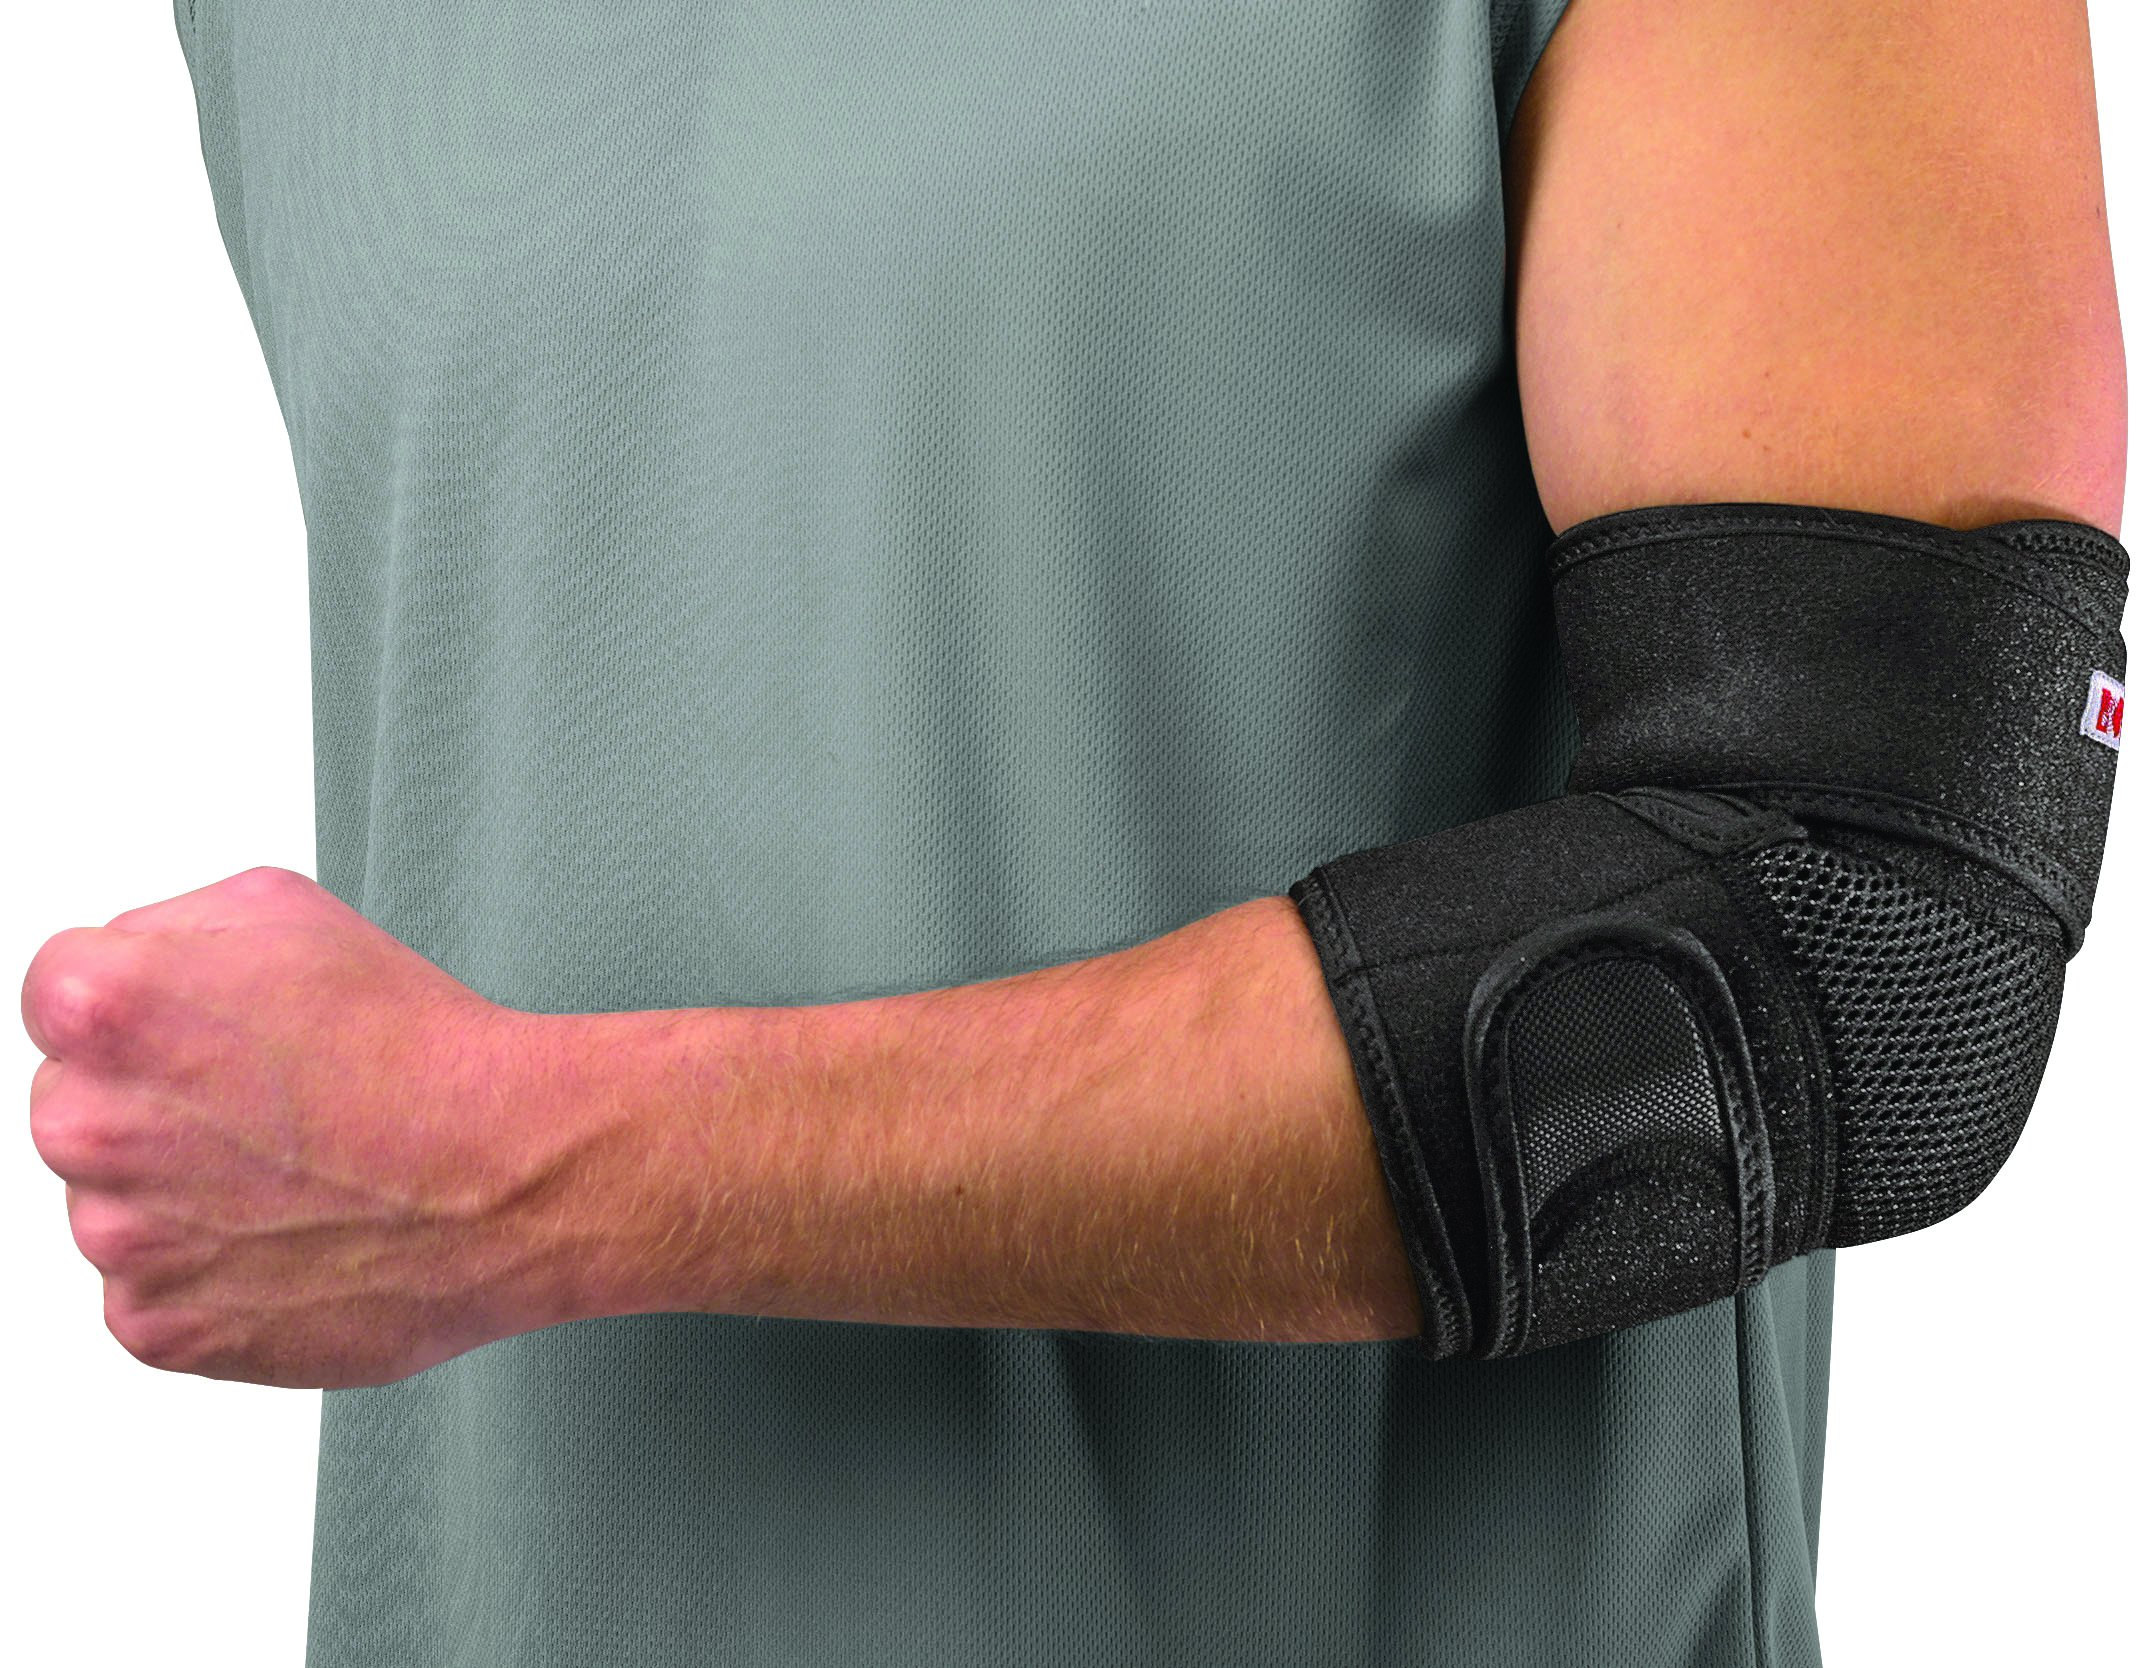 Mueller Adjustable Elbow Support, Black, One Size Fits Most (Packaging May Vary)